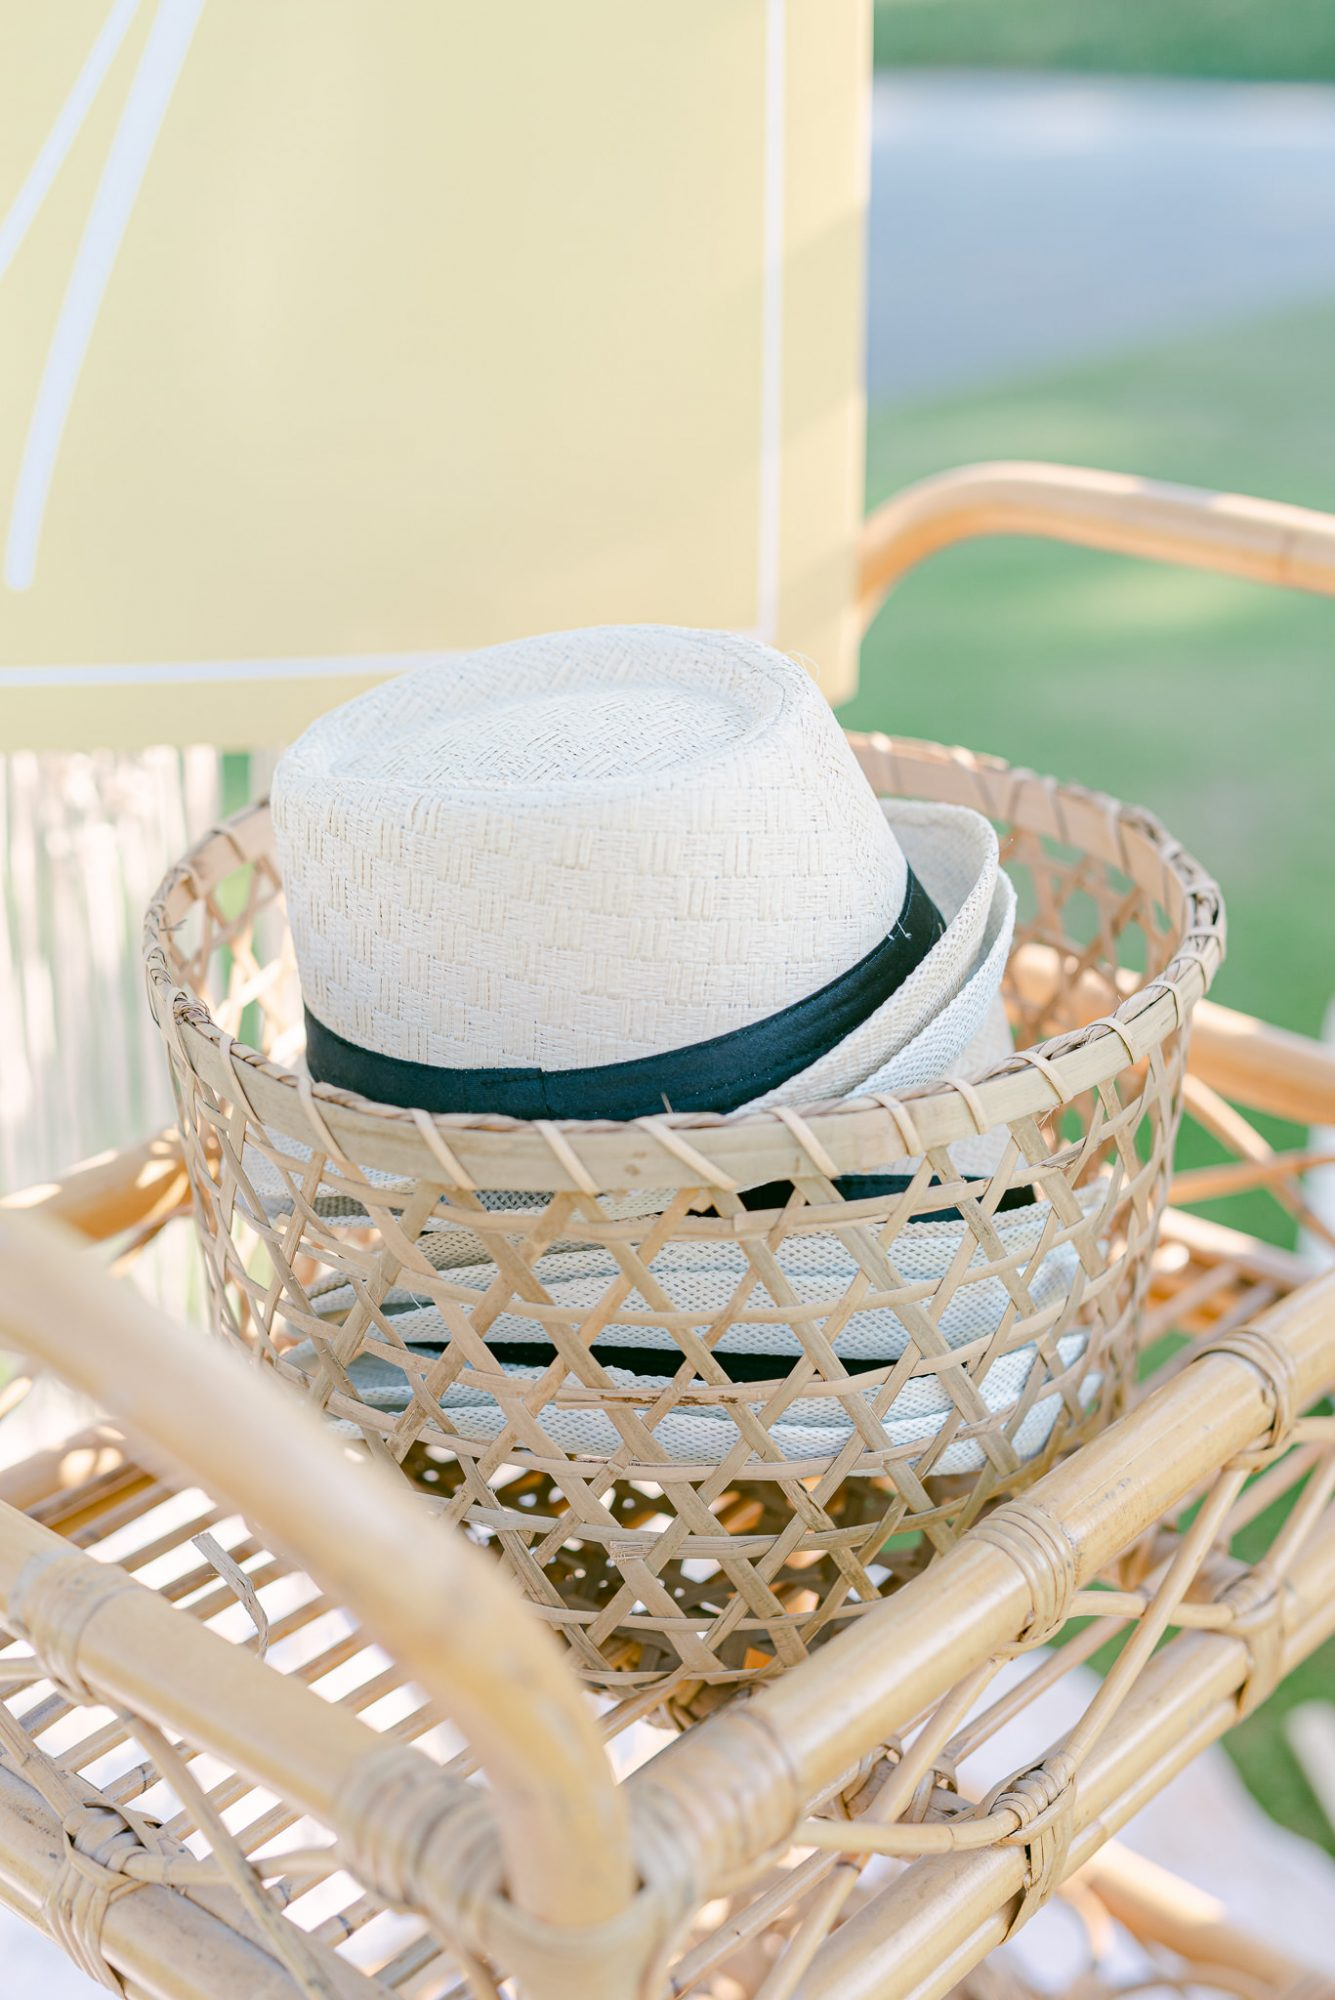 basket of white hats